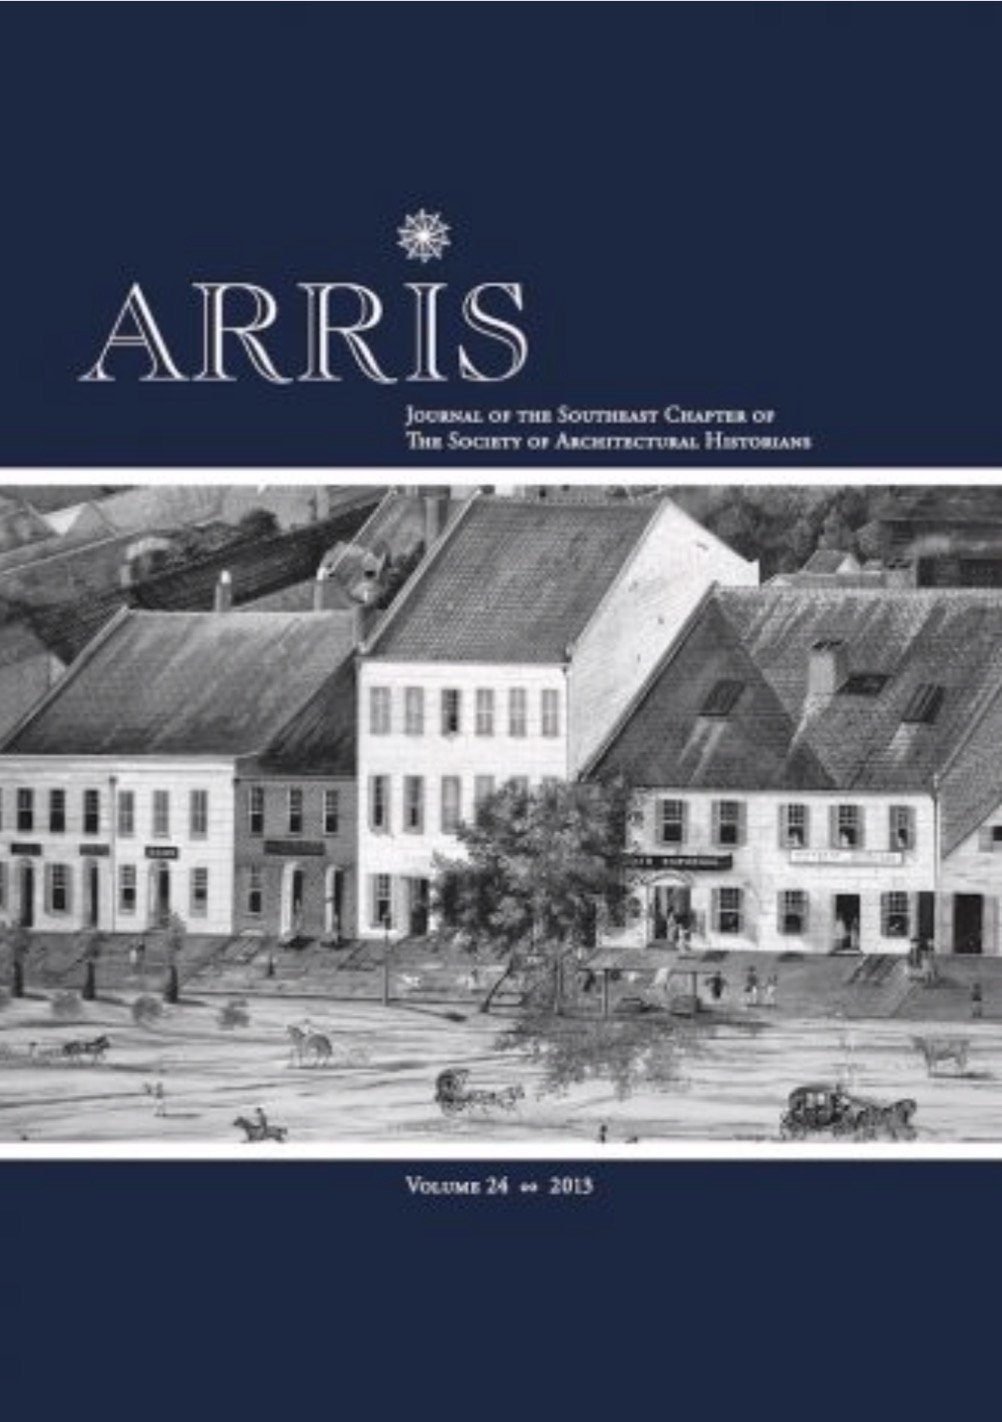 New Deadline: Seeking Nominations for Arris Editor